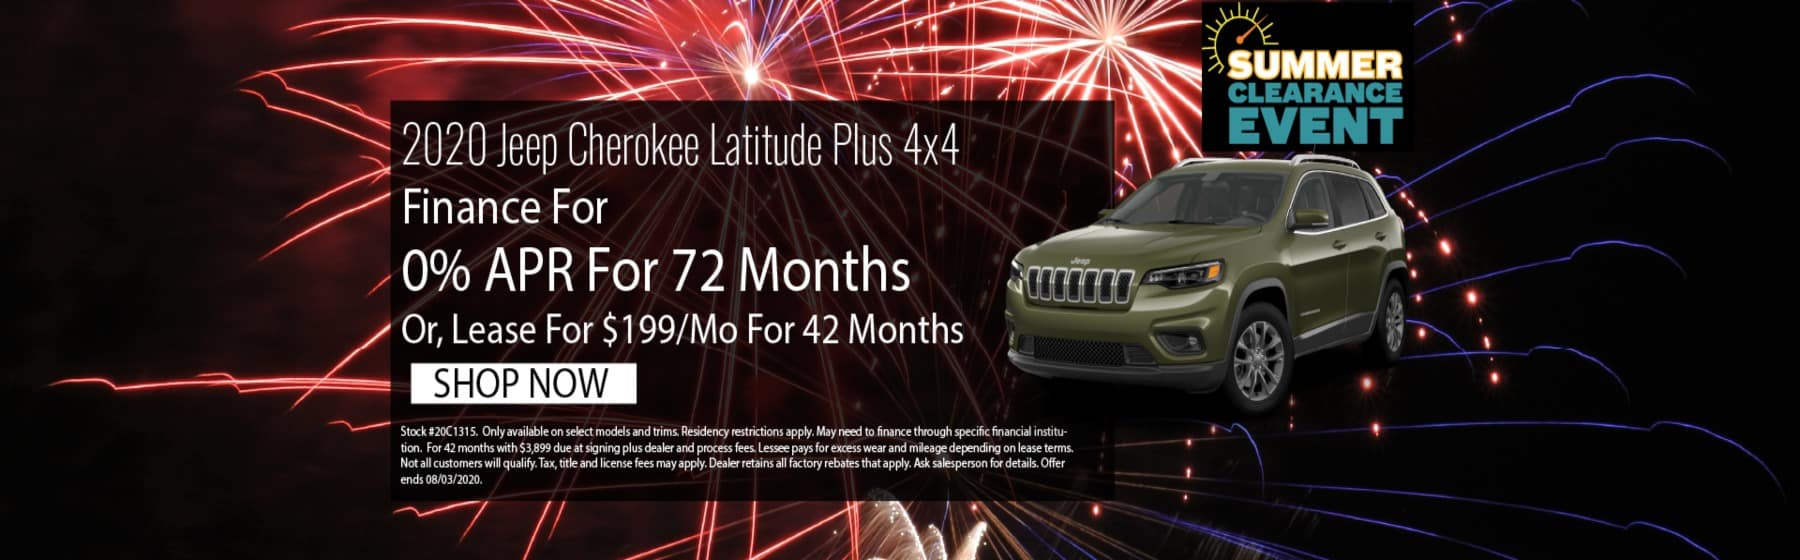 2020 Jeep Cherokee July 2020 Offer